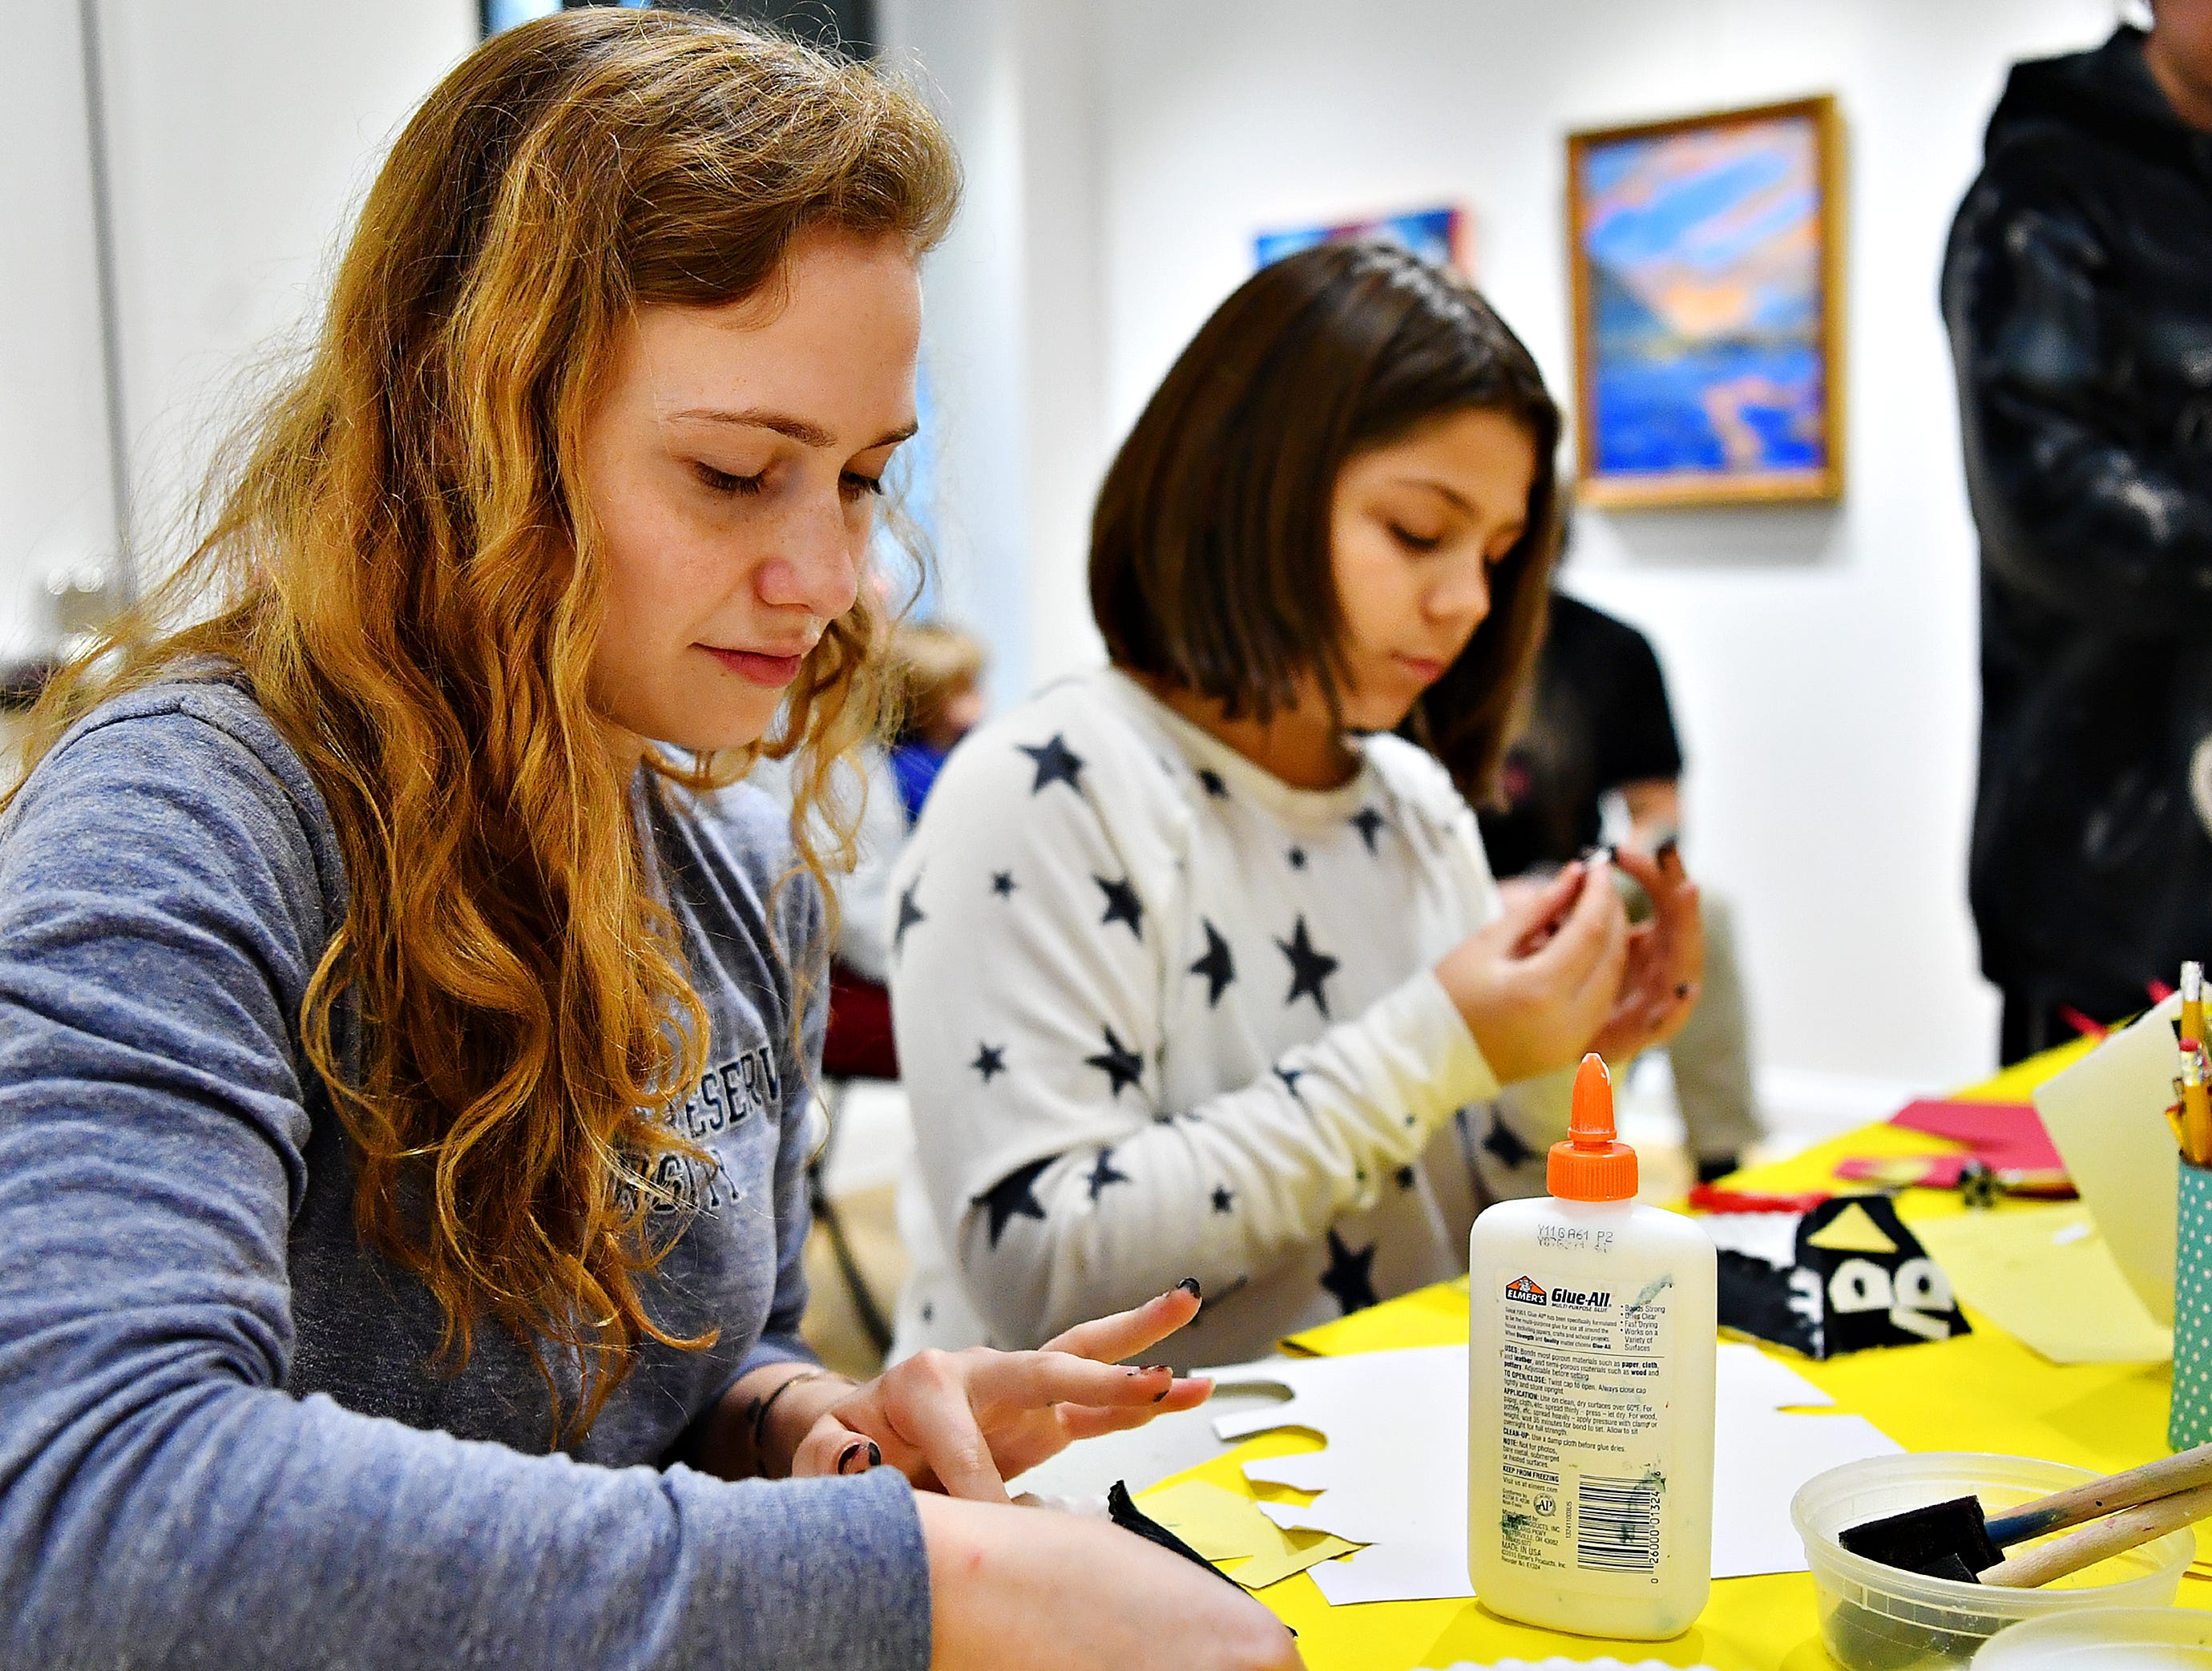 Abigail Yaffe, left, and her sister Sophia Cotto, 11, both of Seven Valleys, build paper penguins during the first First Friday of the year at Creative York in York City, Friday, Jan. 4, 2019. Dawn J. Sagert photo